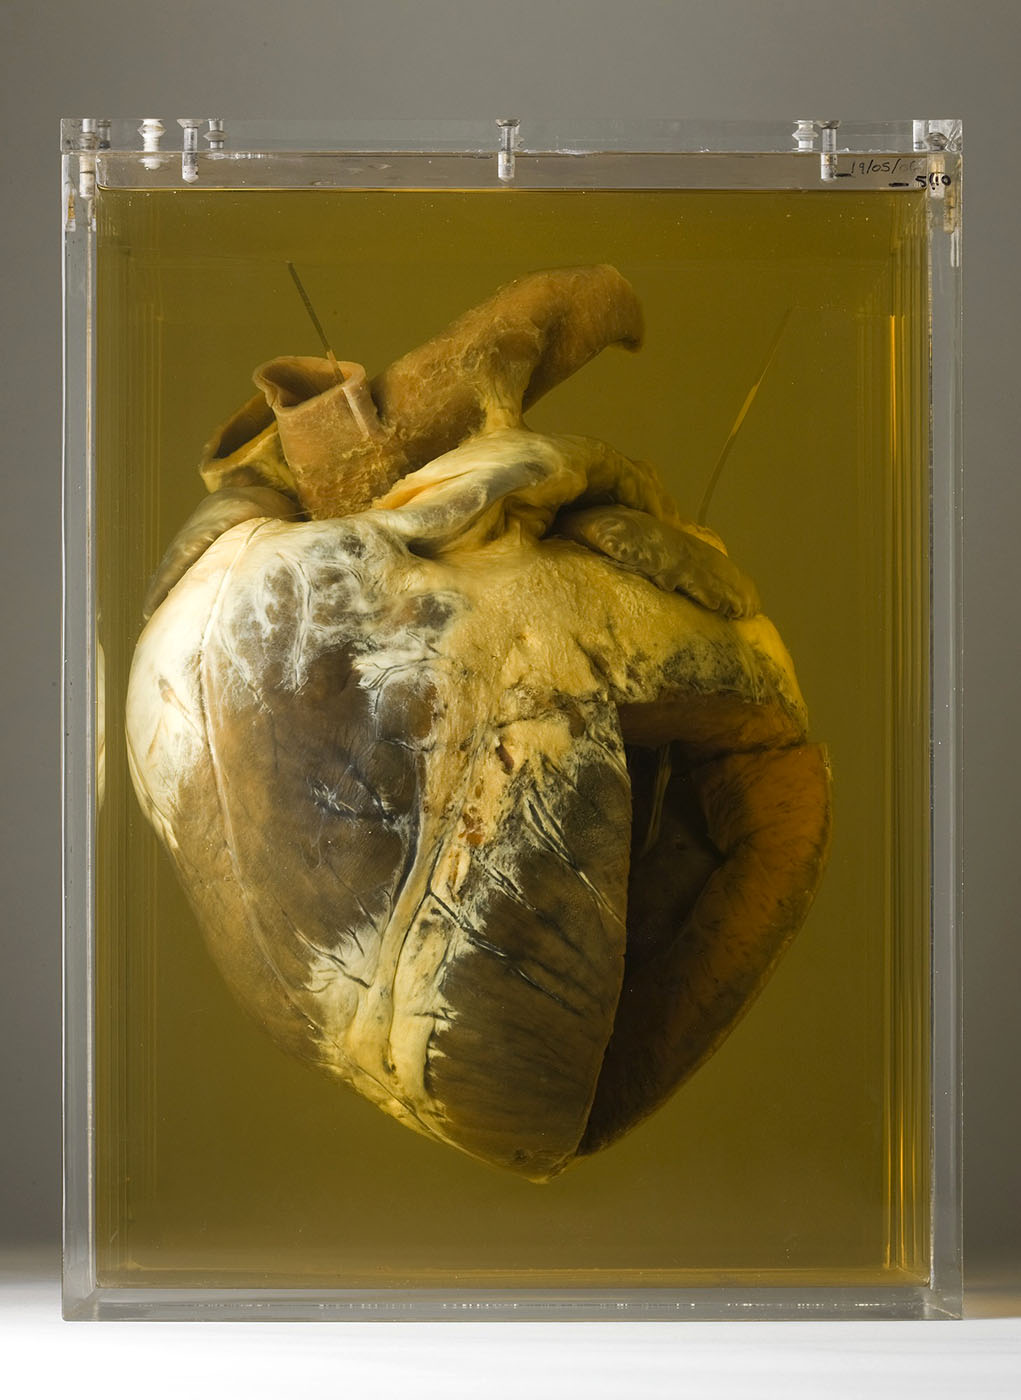 Horses heart suspended in a clear solution in a clear case. The bottom right quarter of the heart has been removed.  - click to view larger image